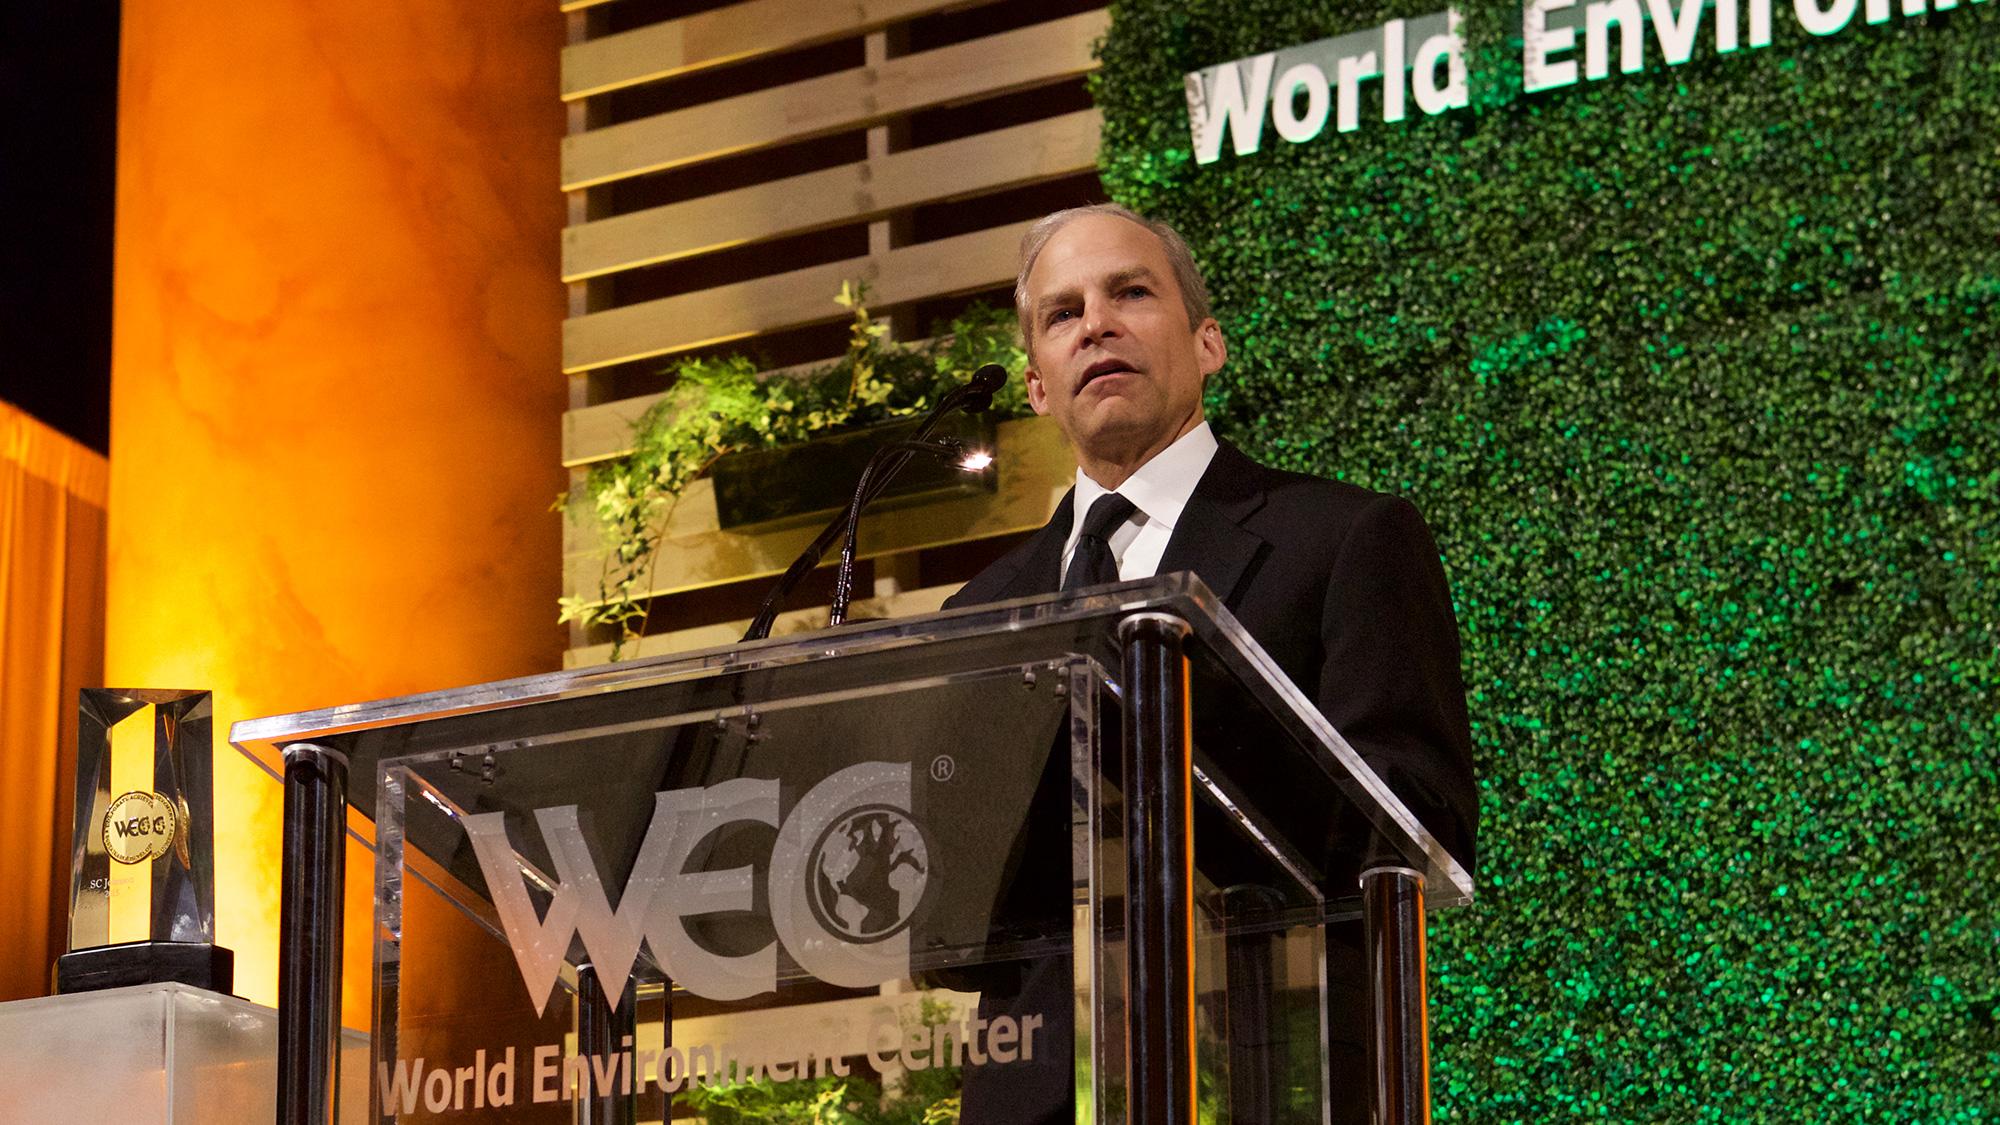 H. Fisk Johnson riceve il Gold Medal Award for Sustainable Development Achievements 2015 del World Environment Center